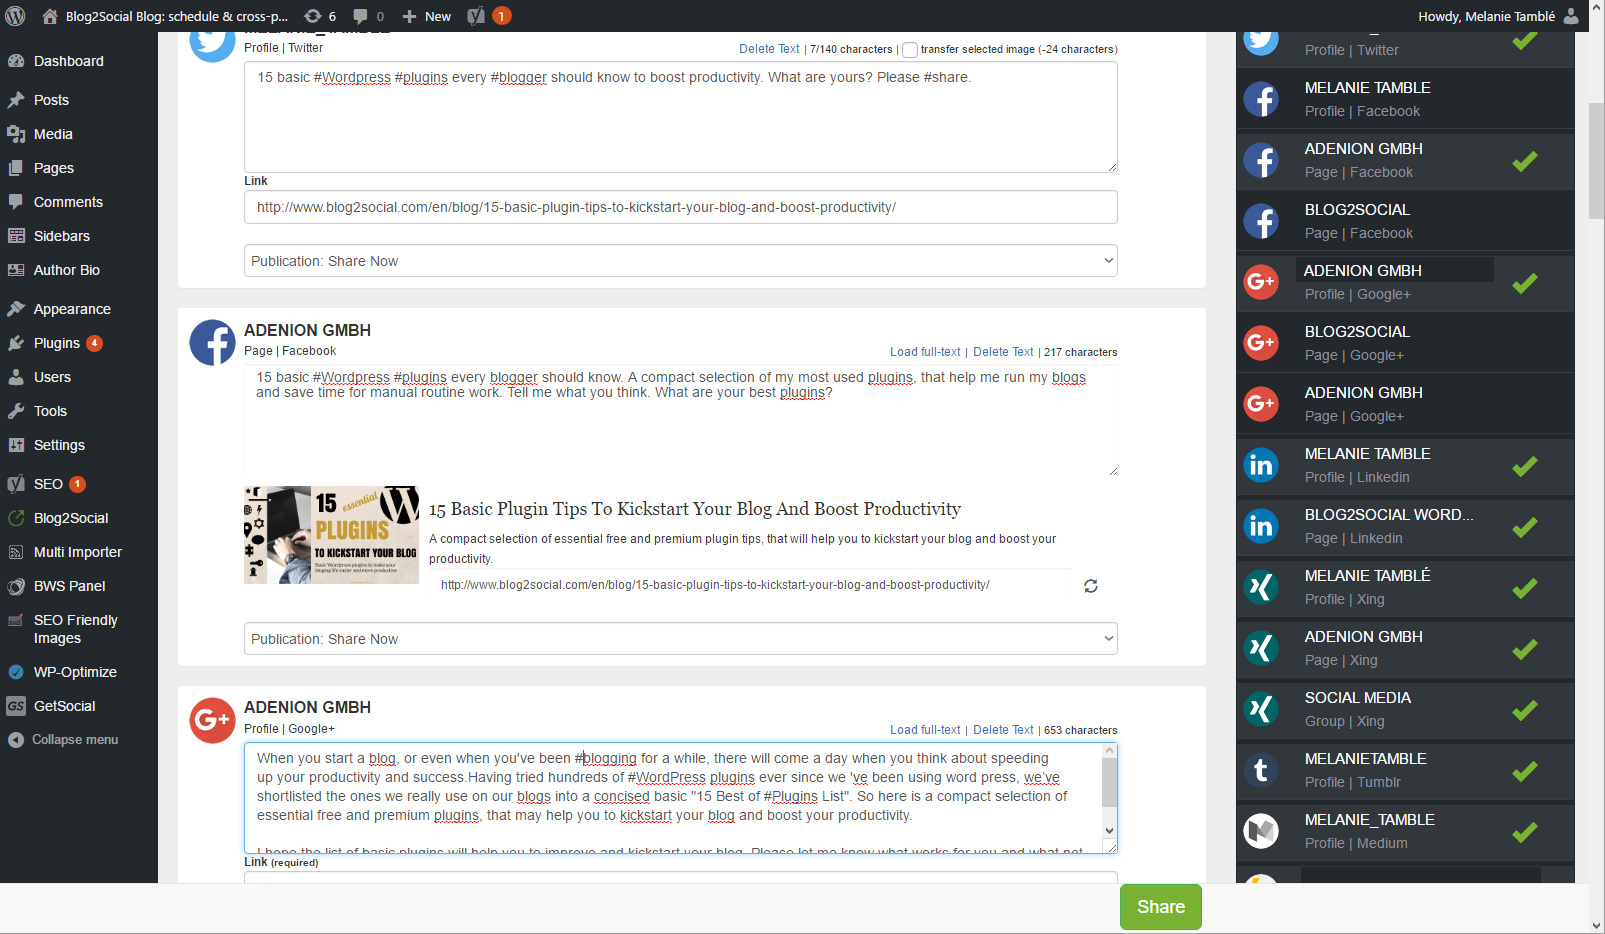 customizing blogposts